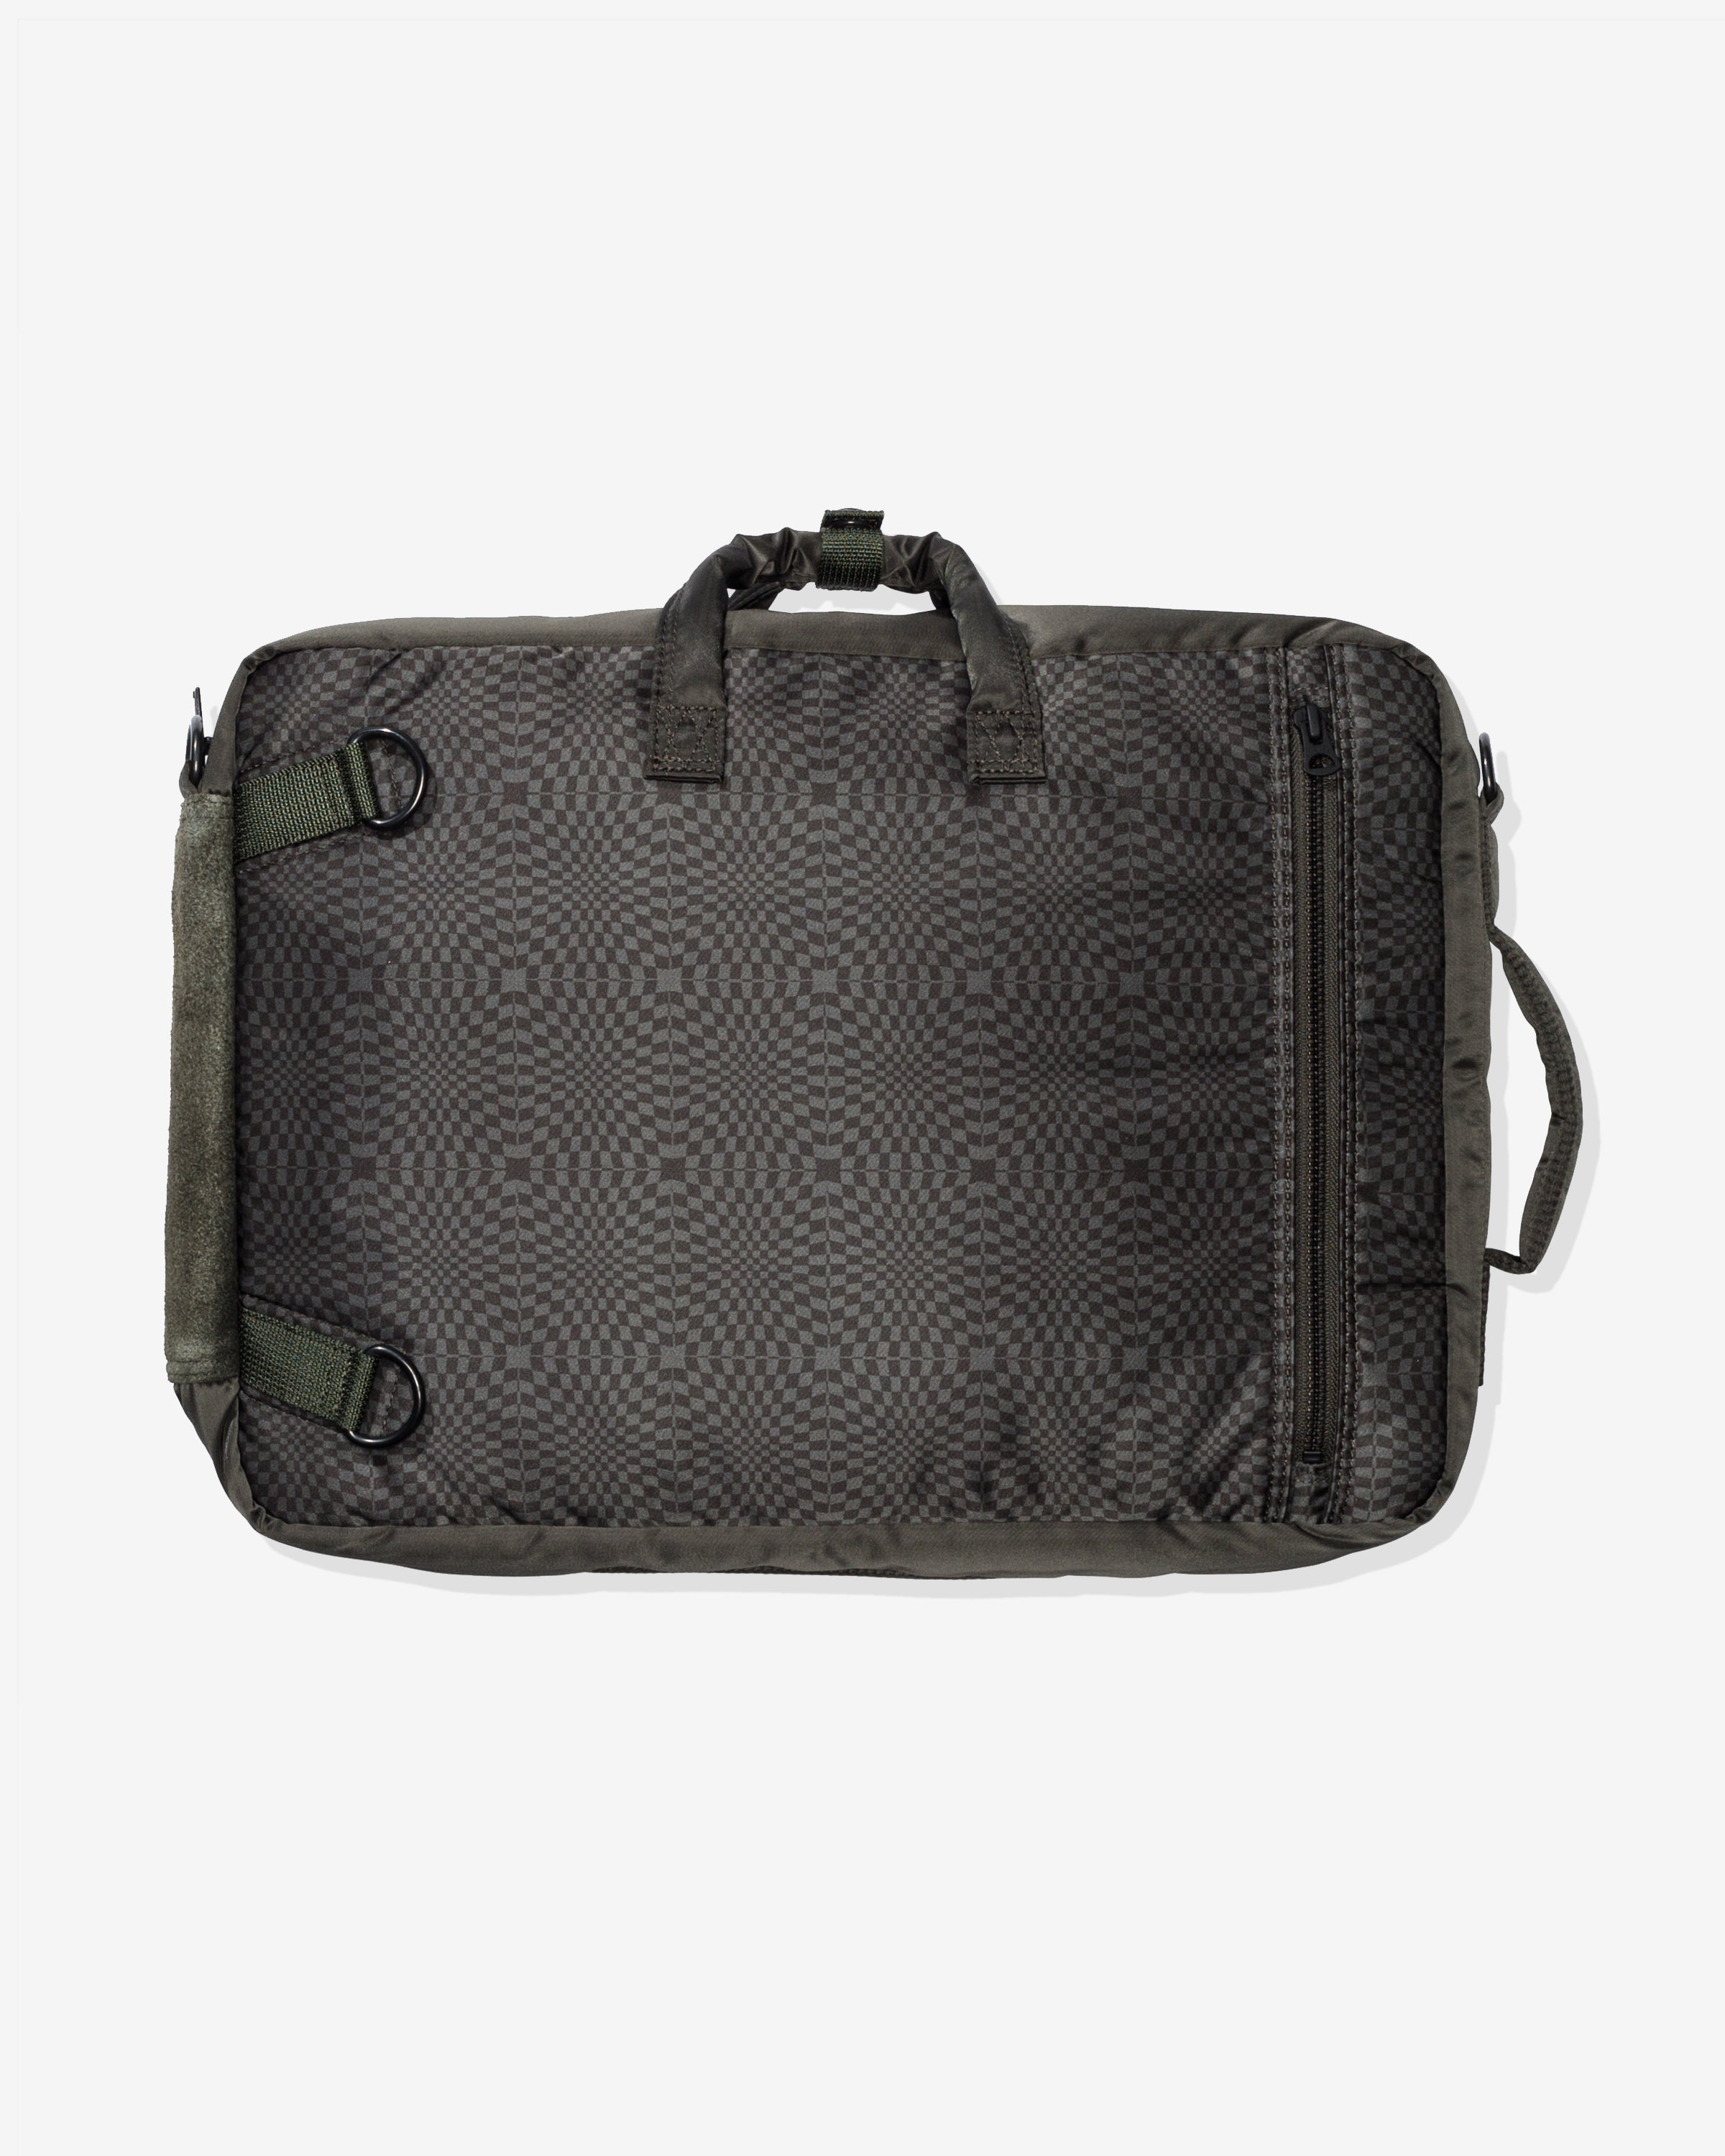 VANS X PORTER 3-WAY BRIEF CASE - FORESTNIGHT/ BLACKINK